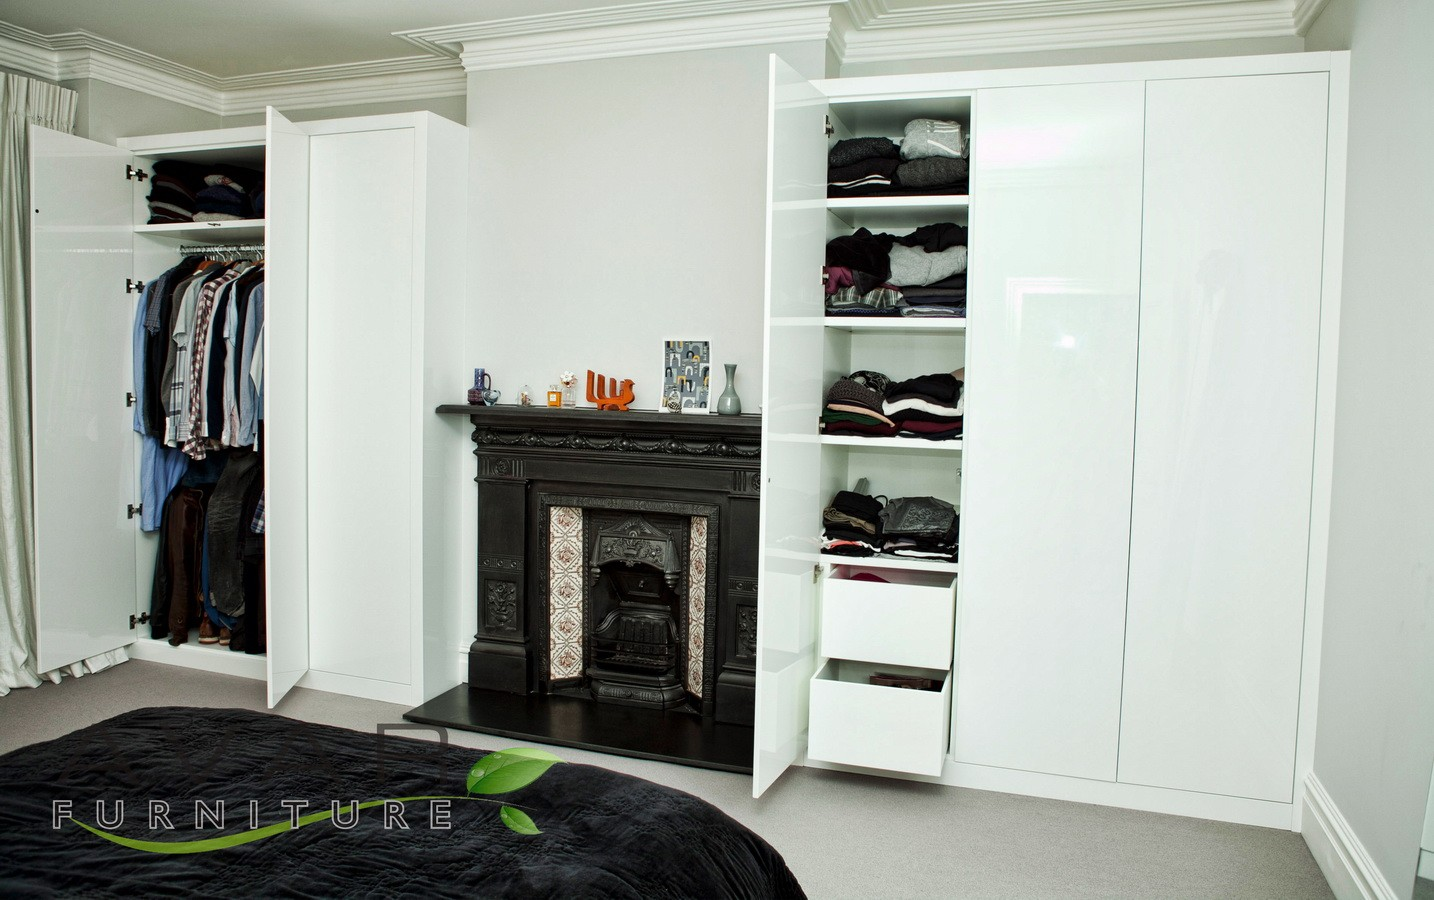 ideas for closet under stairs - ƸӜƷ Fitted wardrobe ideas Gallery 4